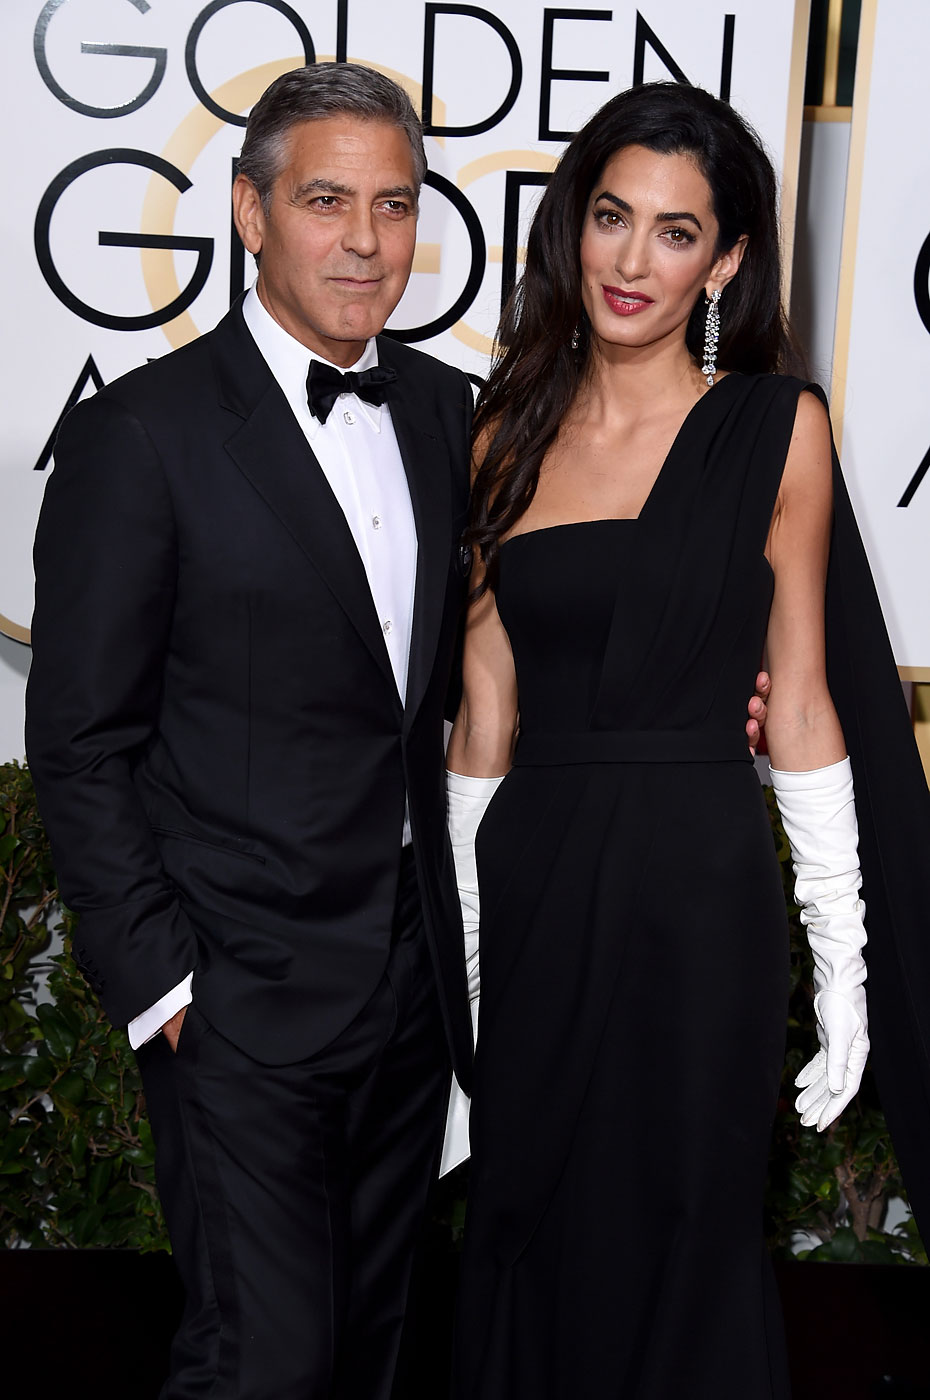 George Clooney and Amal Alamuddin Clooney attend the 72nd Annual Golden Globe Awards at The Beverly Hilton Hotel on Jan. 11, 2015 in Beverly Hills, Calif.